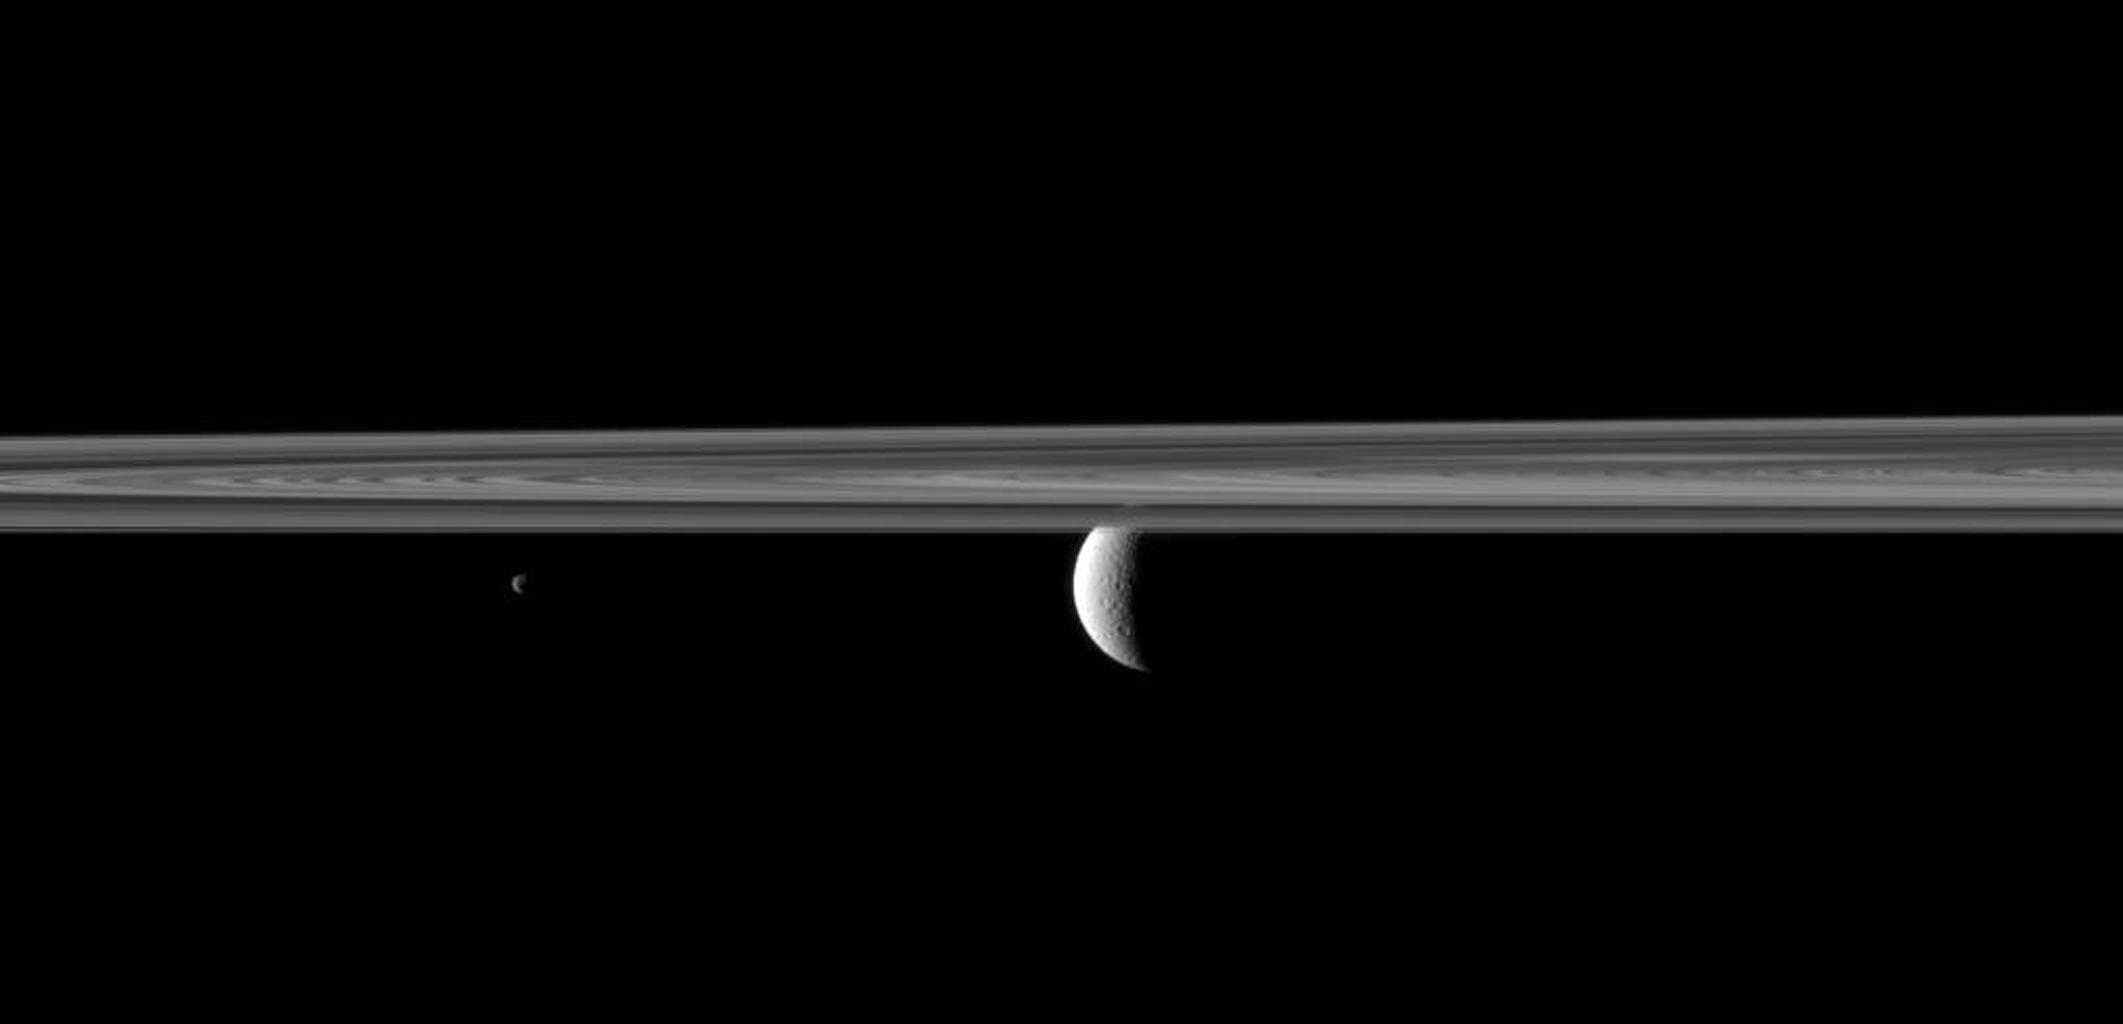 NASA's Cassini spacecraft looks past Saturn's rings and small moon Janus to spy the planet's second largest moon, Rhea where lit terrain is seen.